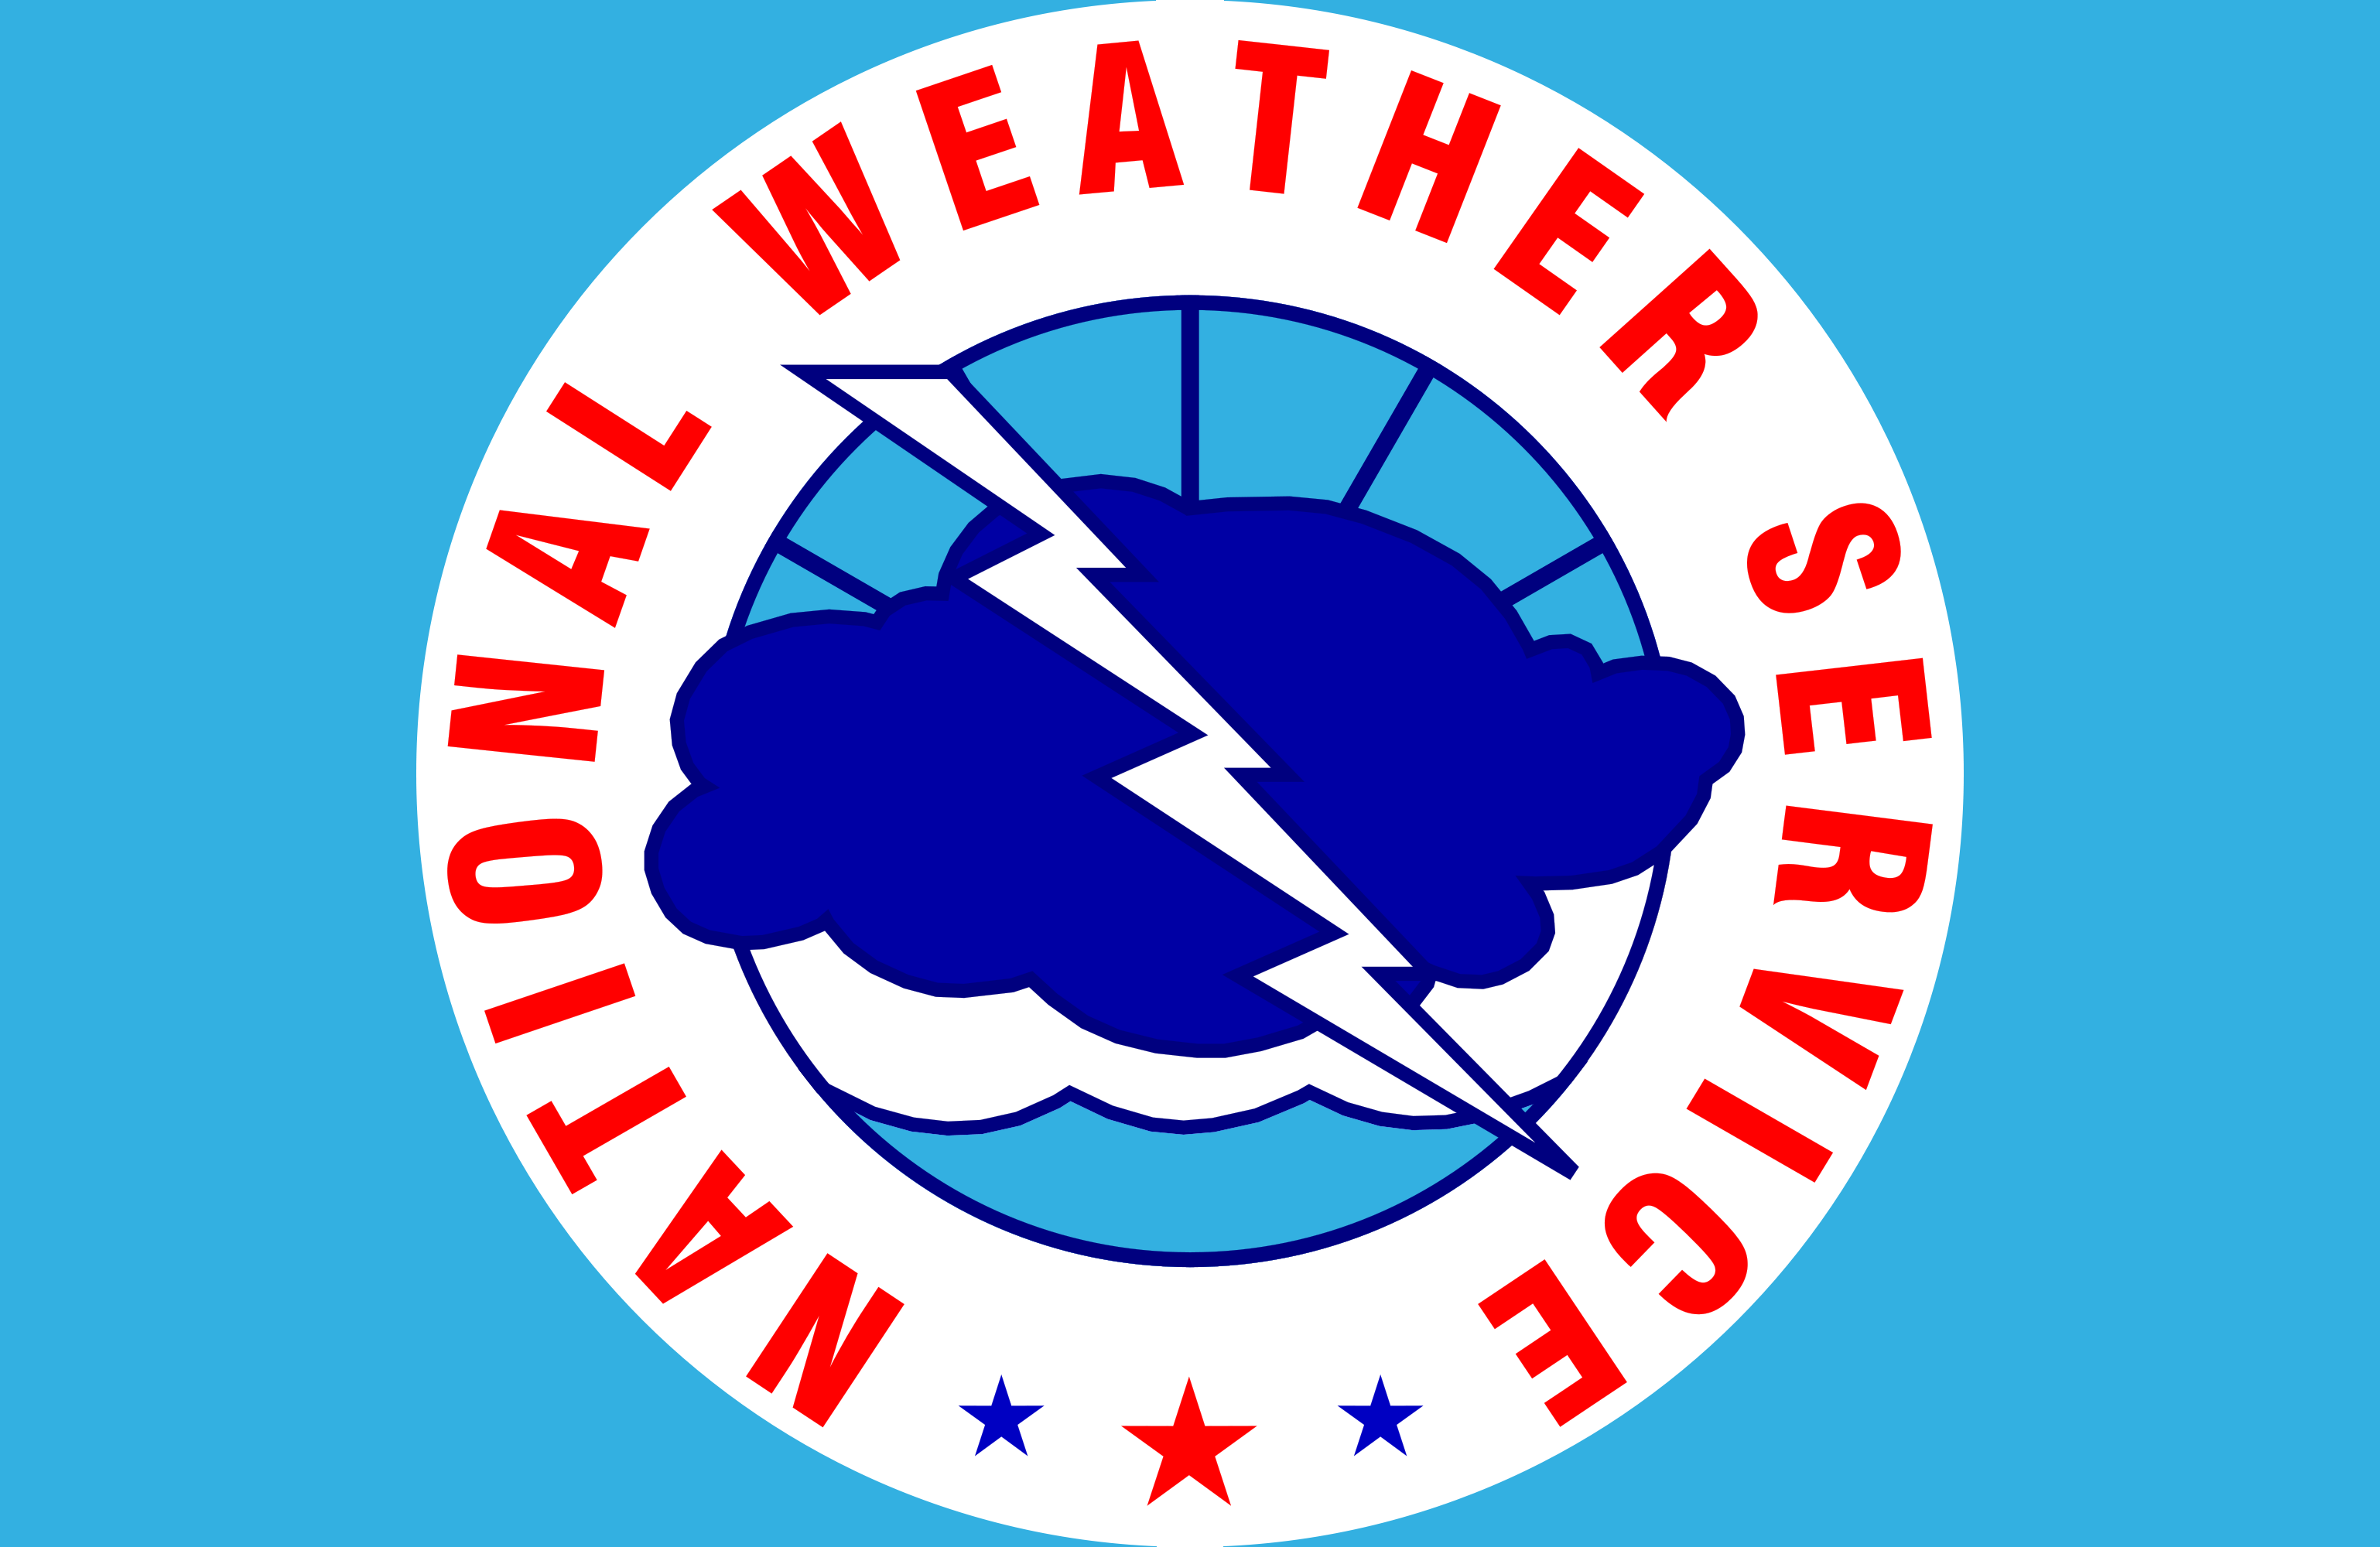 National Weather Service, U.S. Department of Commerce NOAA